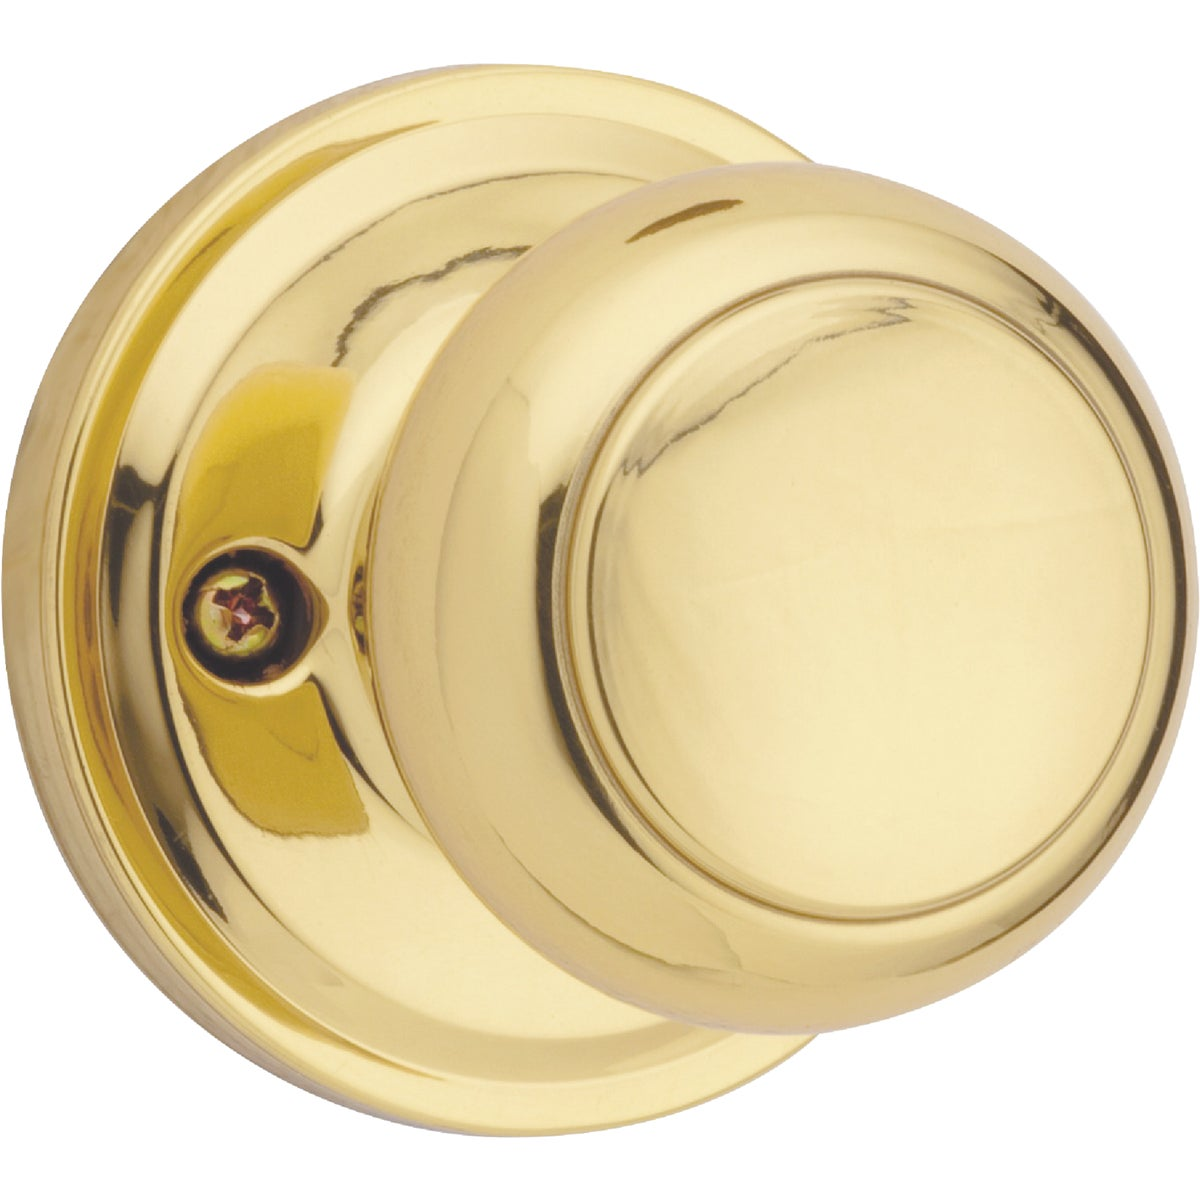 PB TROY DUMMY LOCKSET